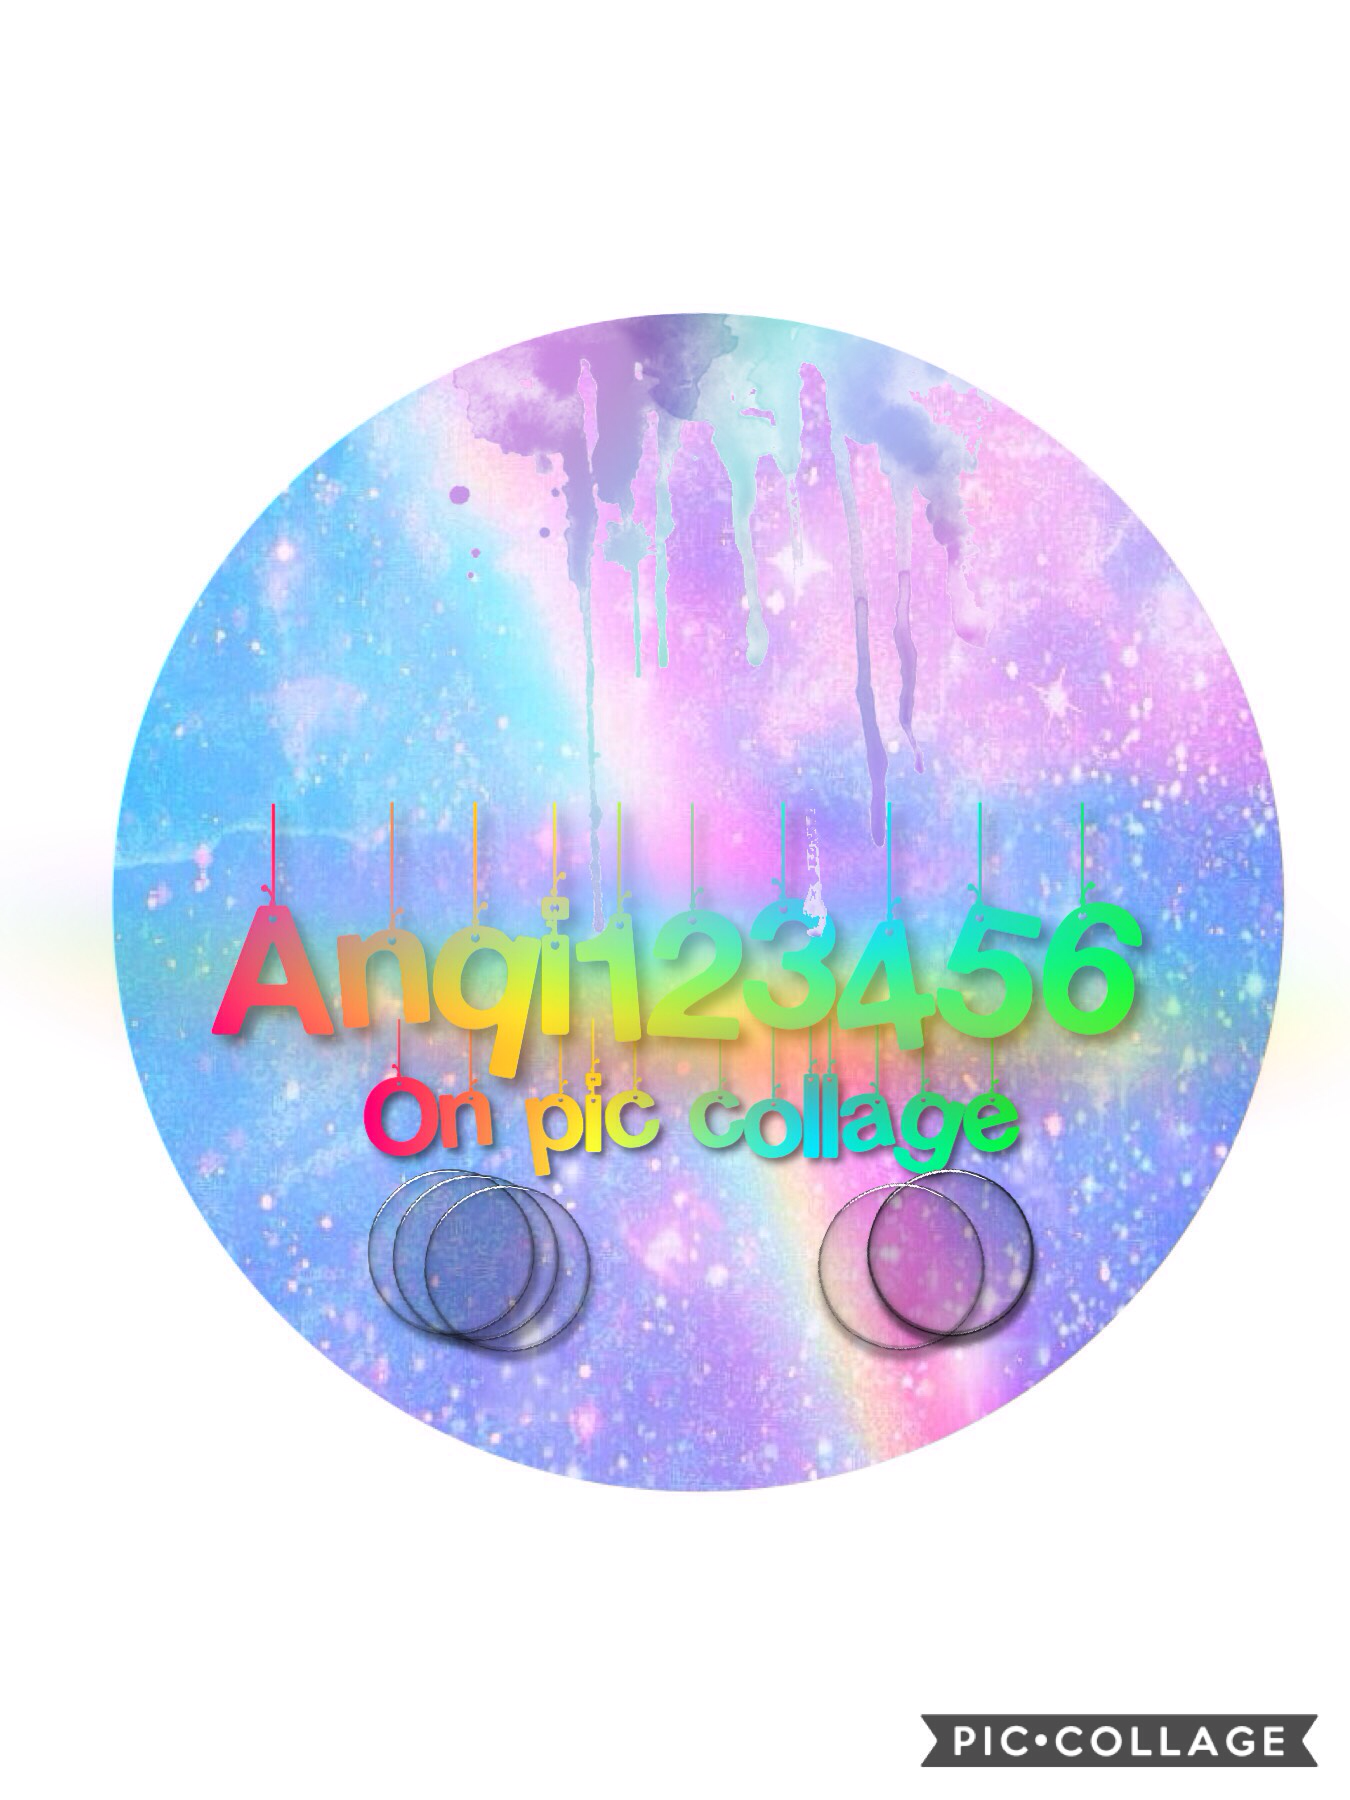 Icon for Anqi123456!! Hope you like it!